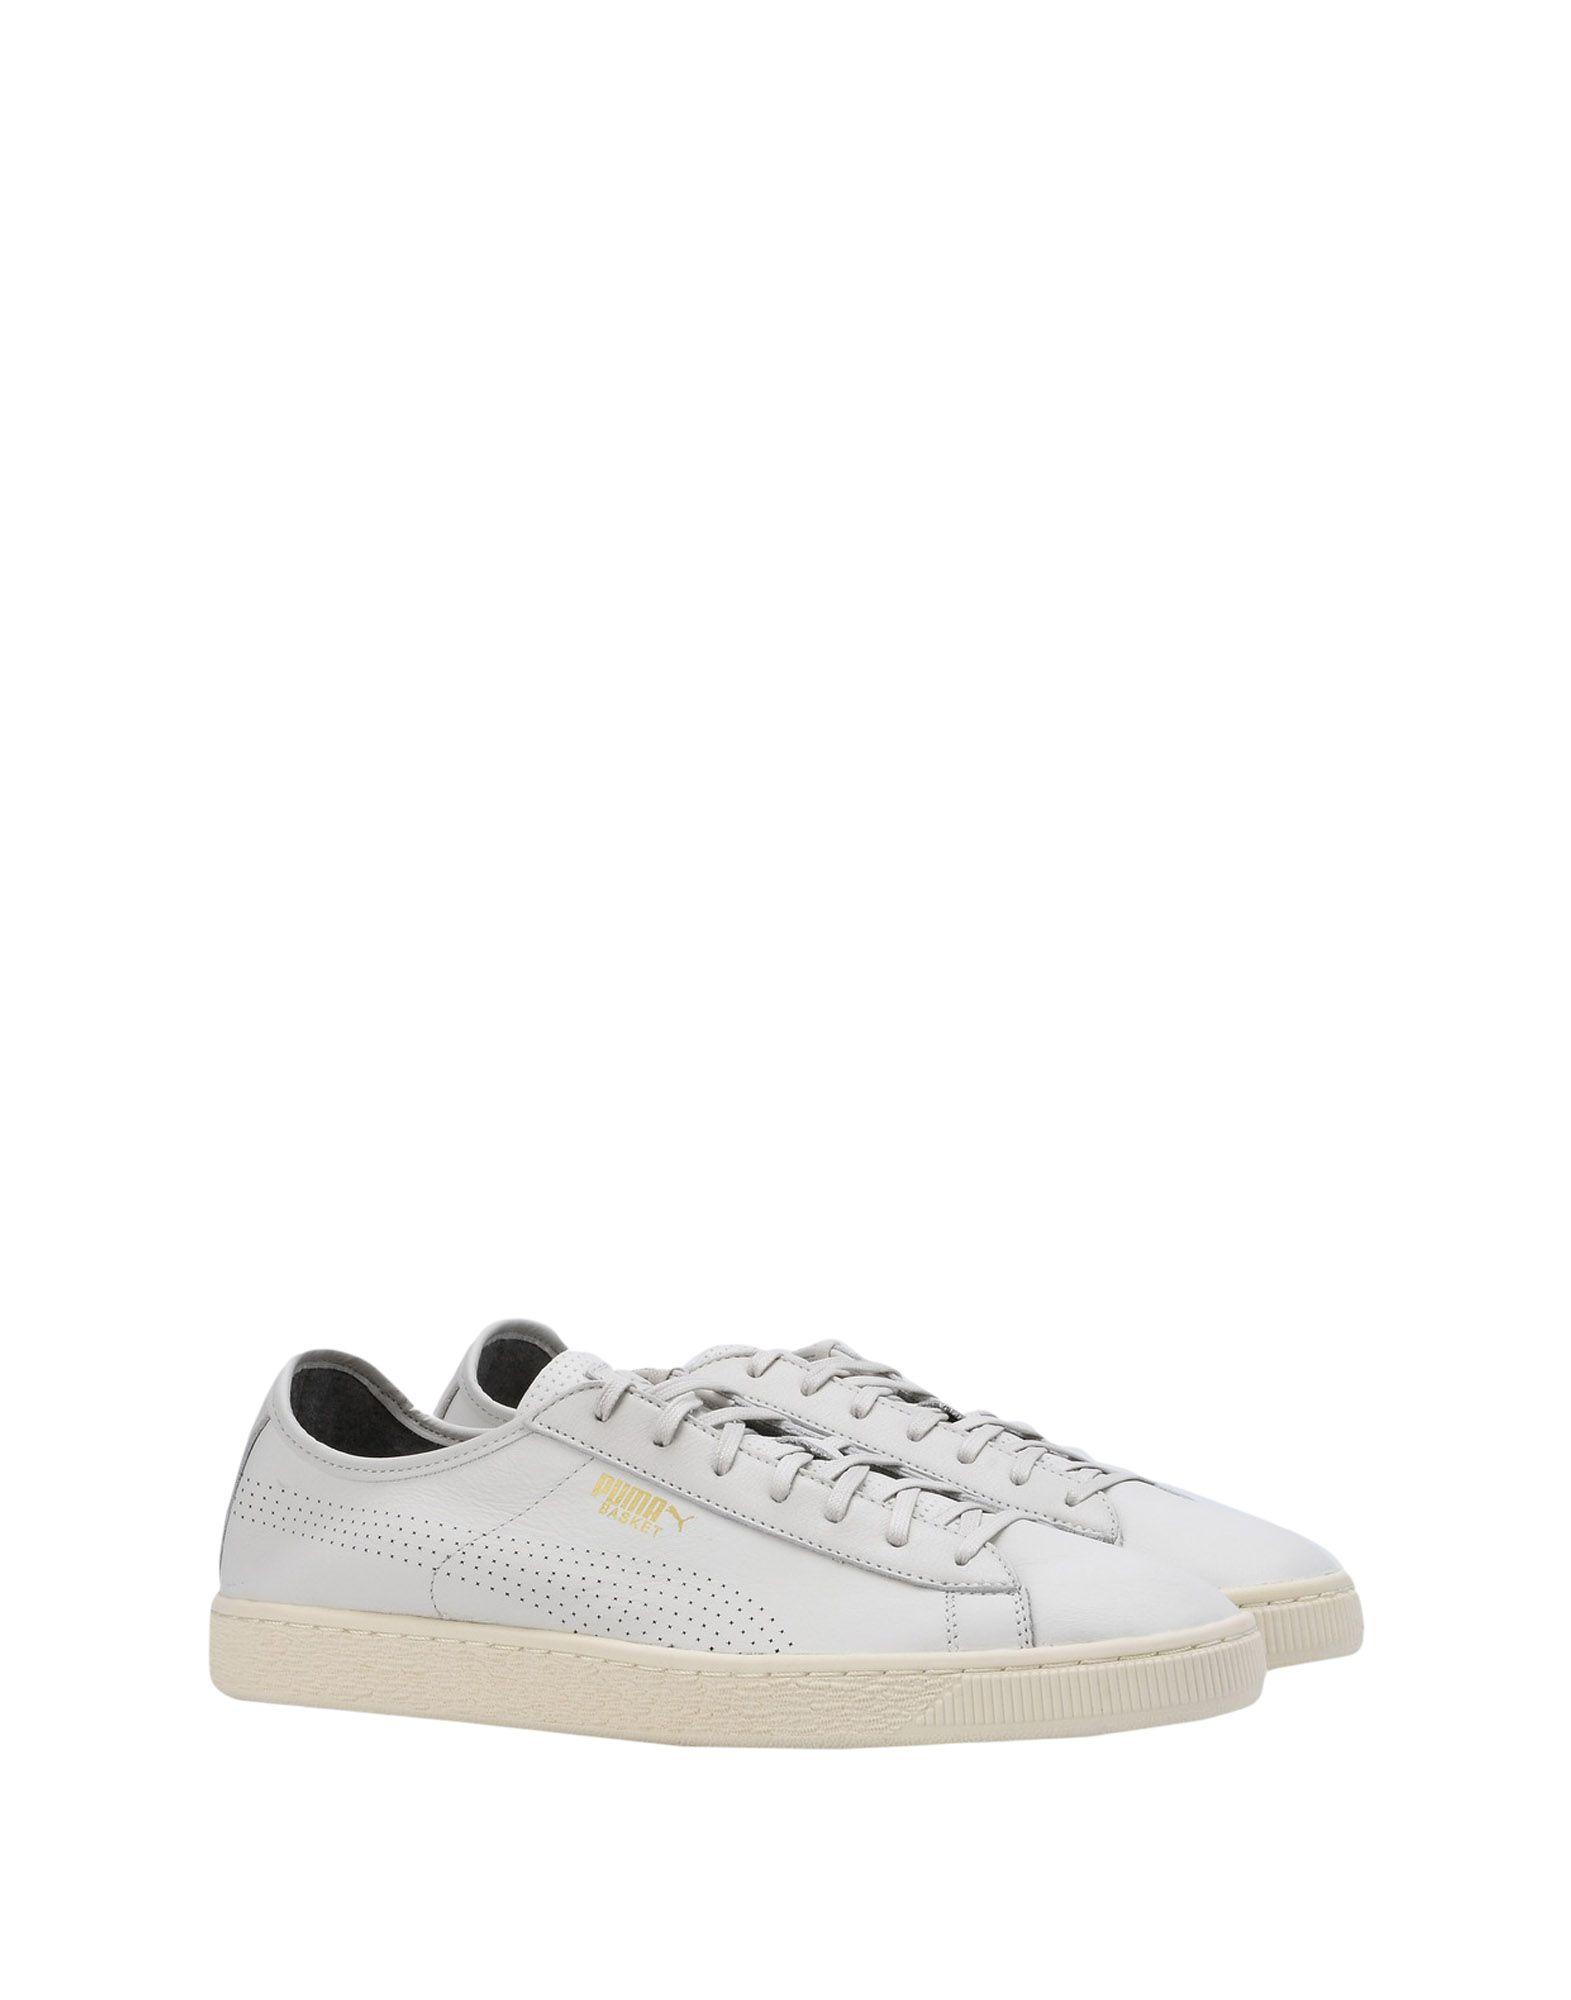 Puma Basket Classic Men Soft - Sneakers - Men Classic Puma Sneakers online on  Canada - 11354668RW 63317d